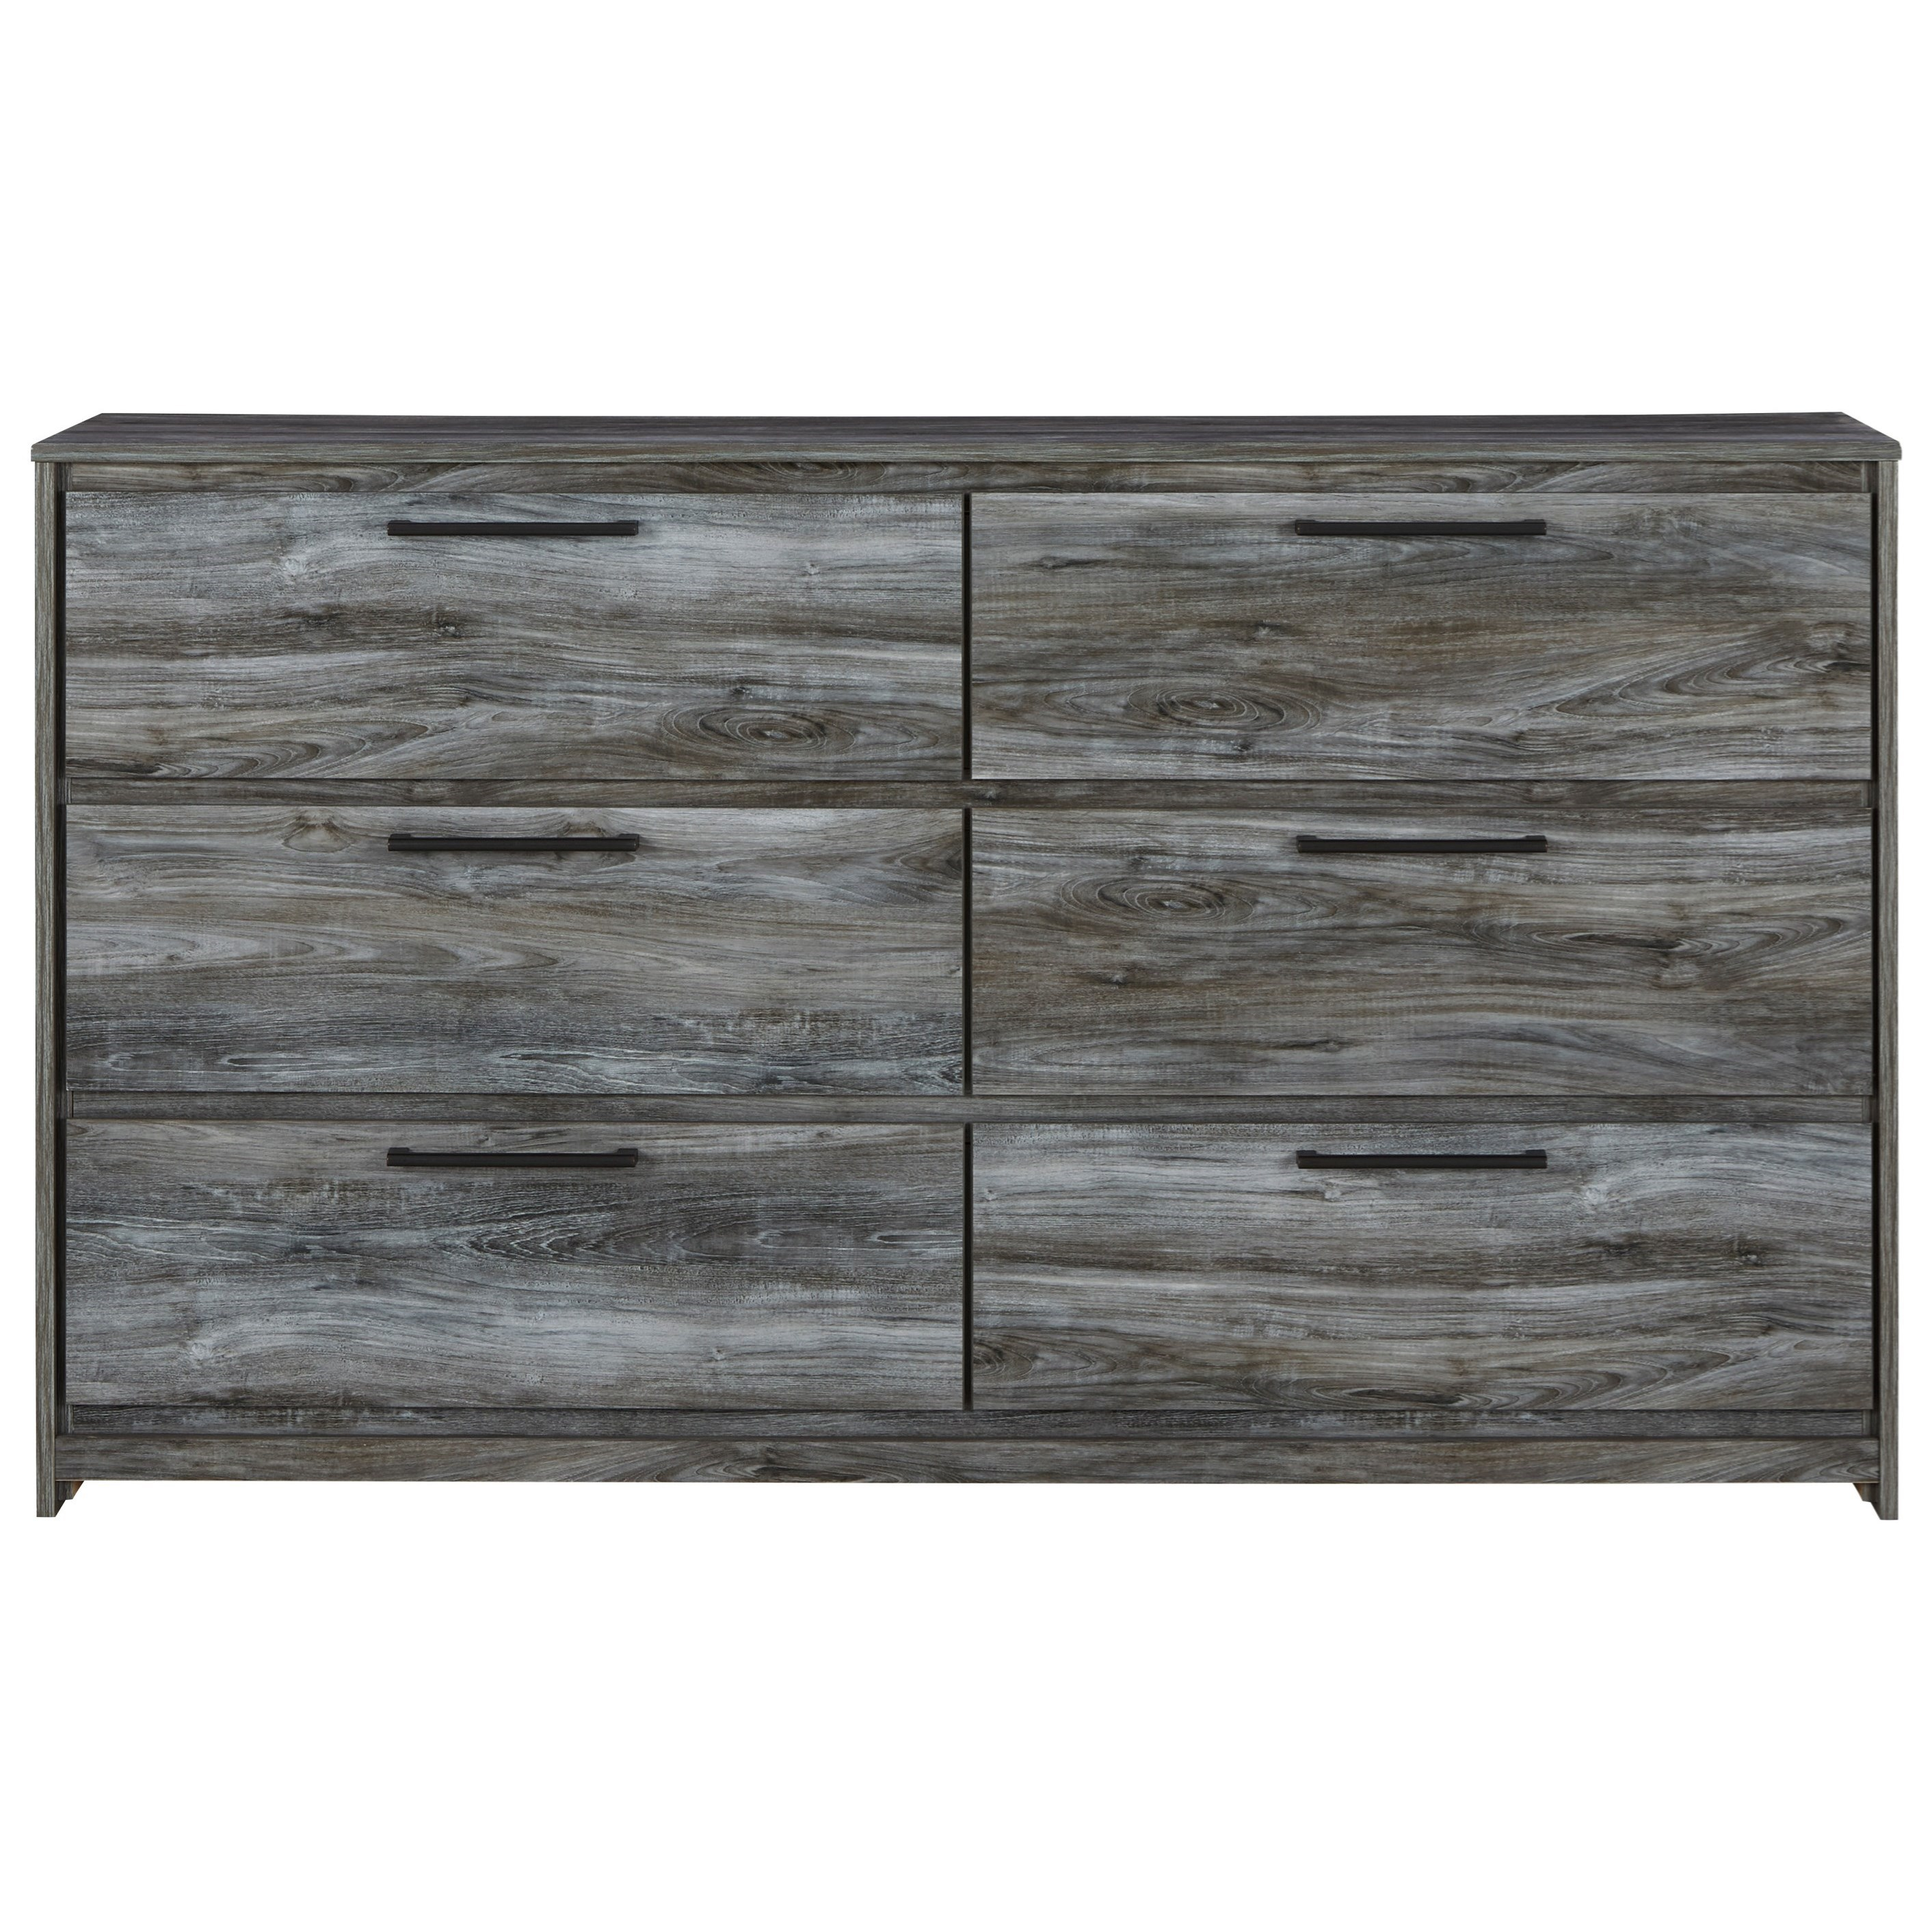 Baystorm 6 Drawer Dresser by Signature Design by Ashley at HomeWorld Furniture